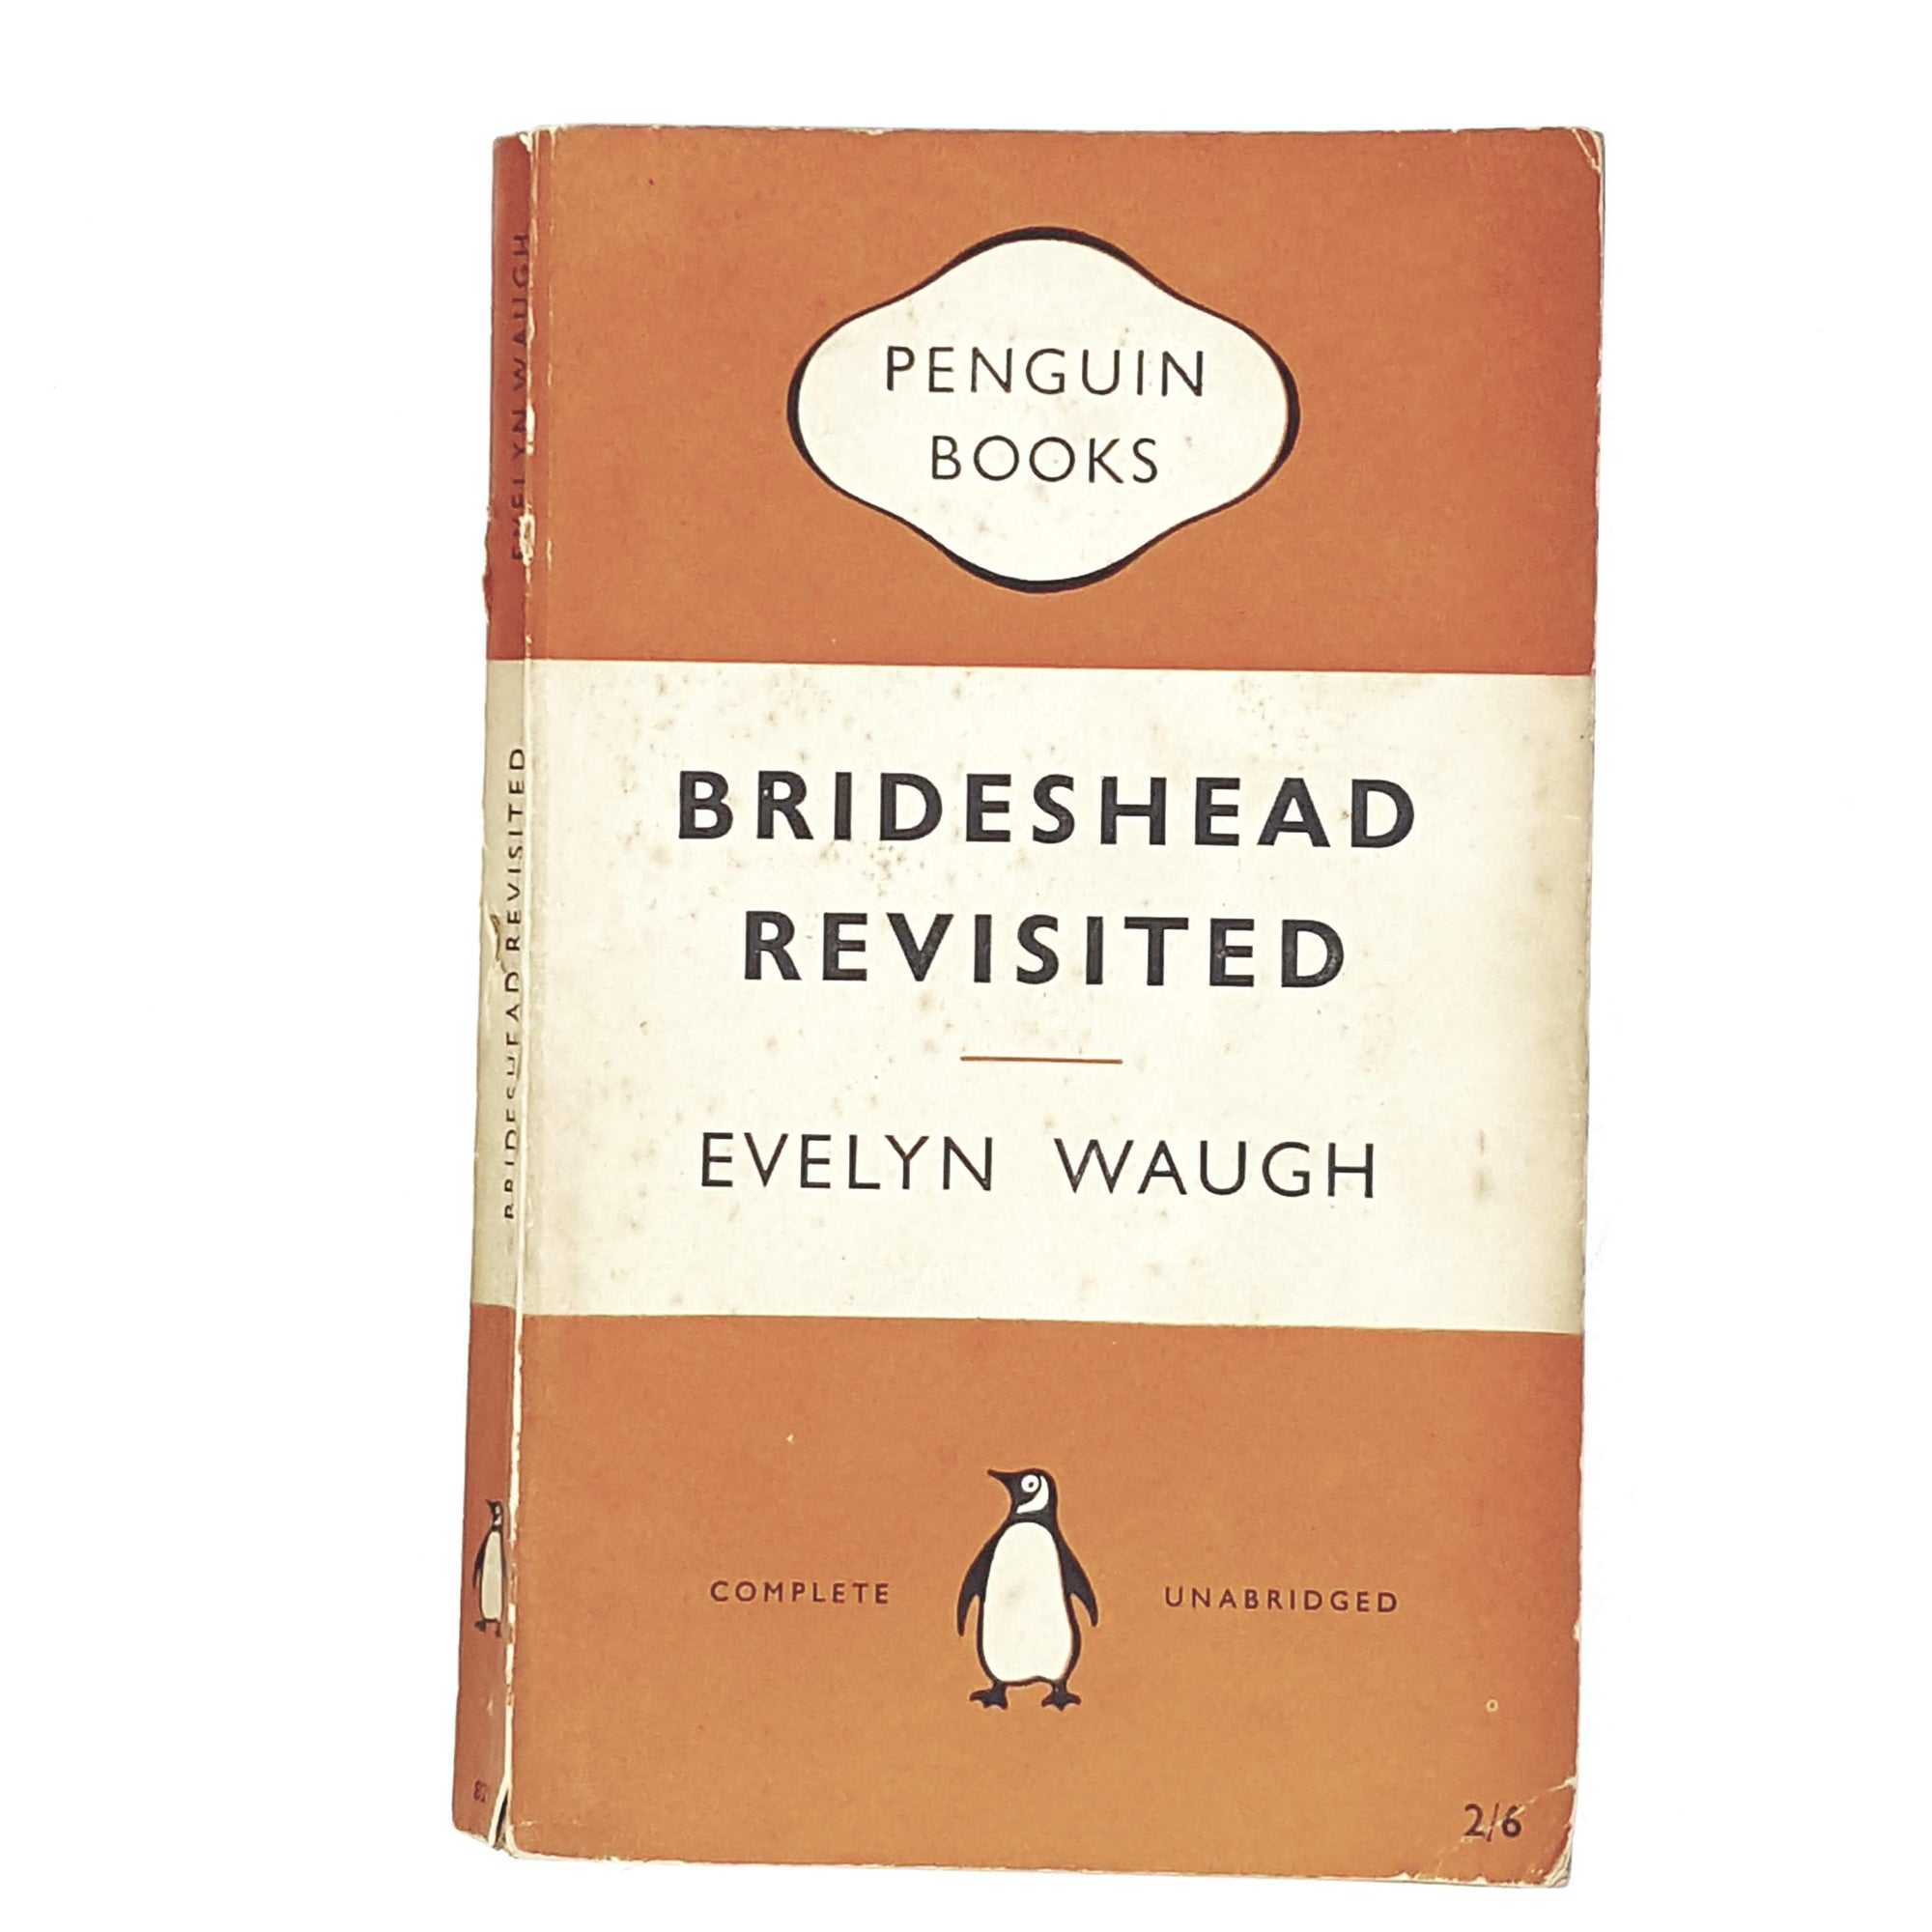 Evelyn Waugh's Brideshead Revisited 1952 - 1954